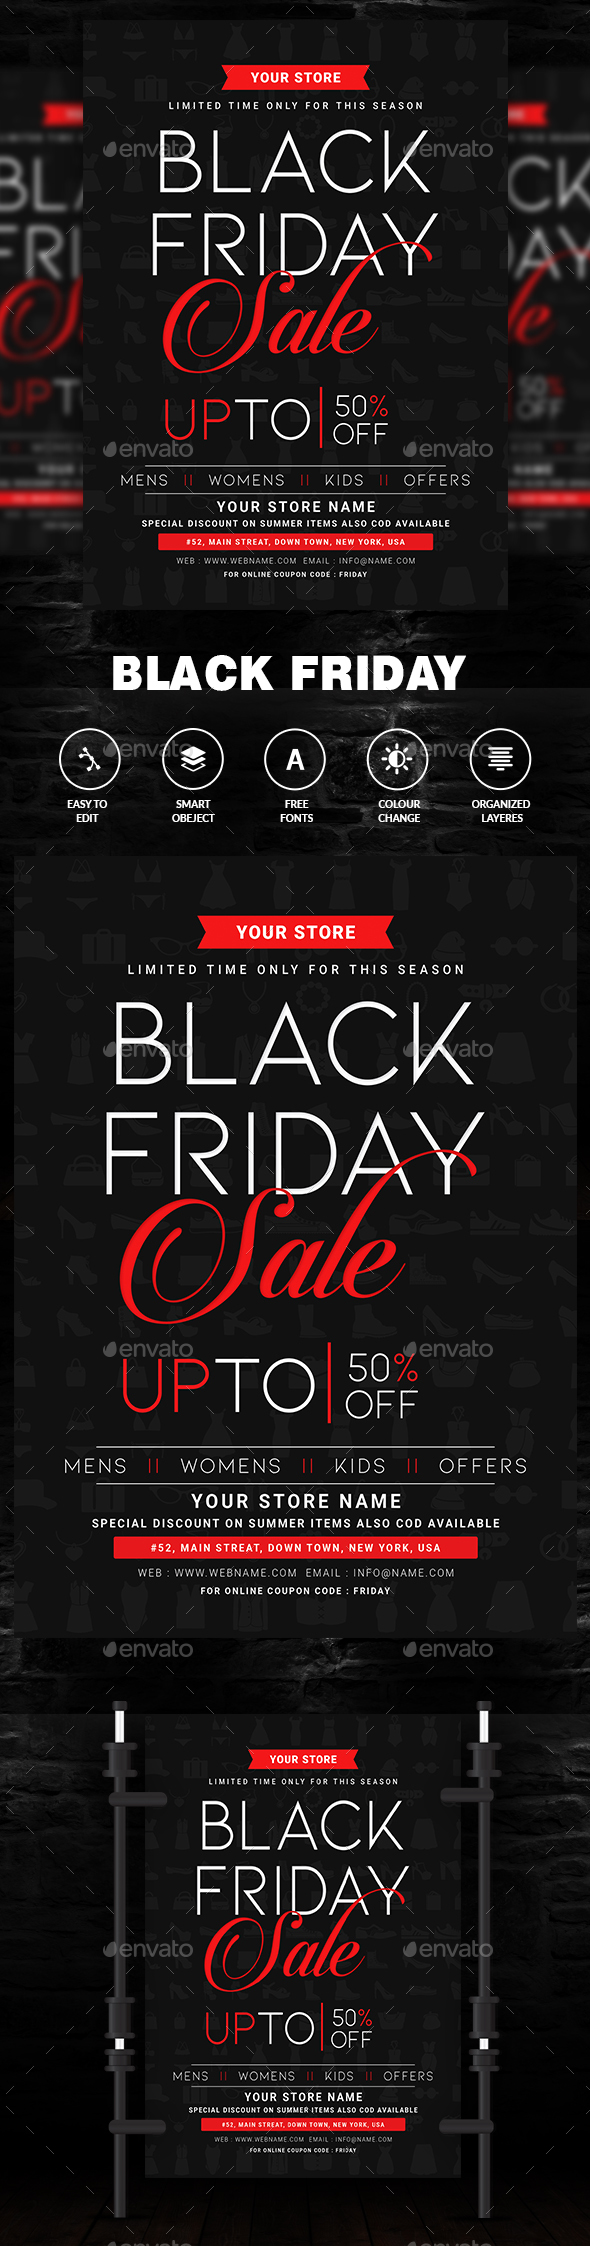 Black Friday - Events Flyers